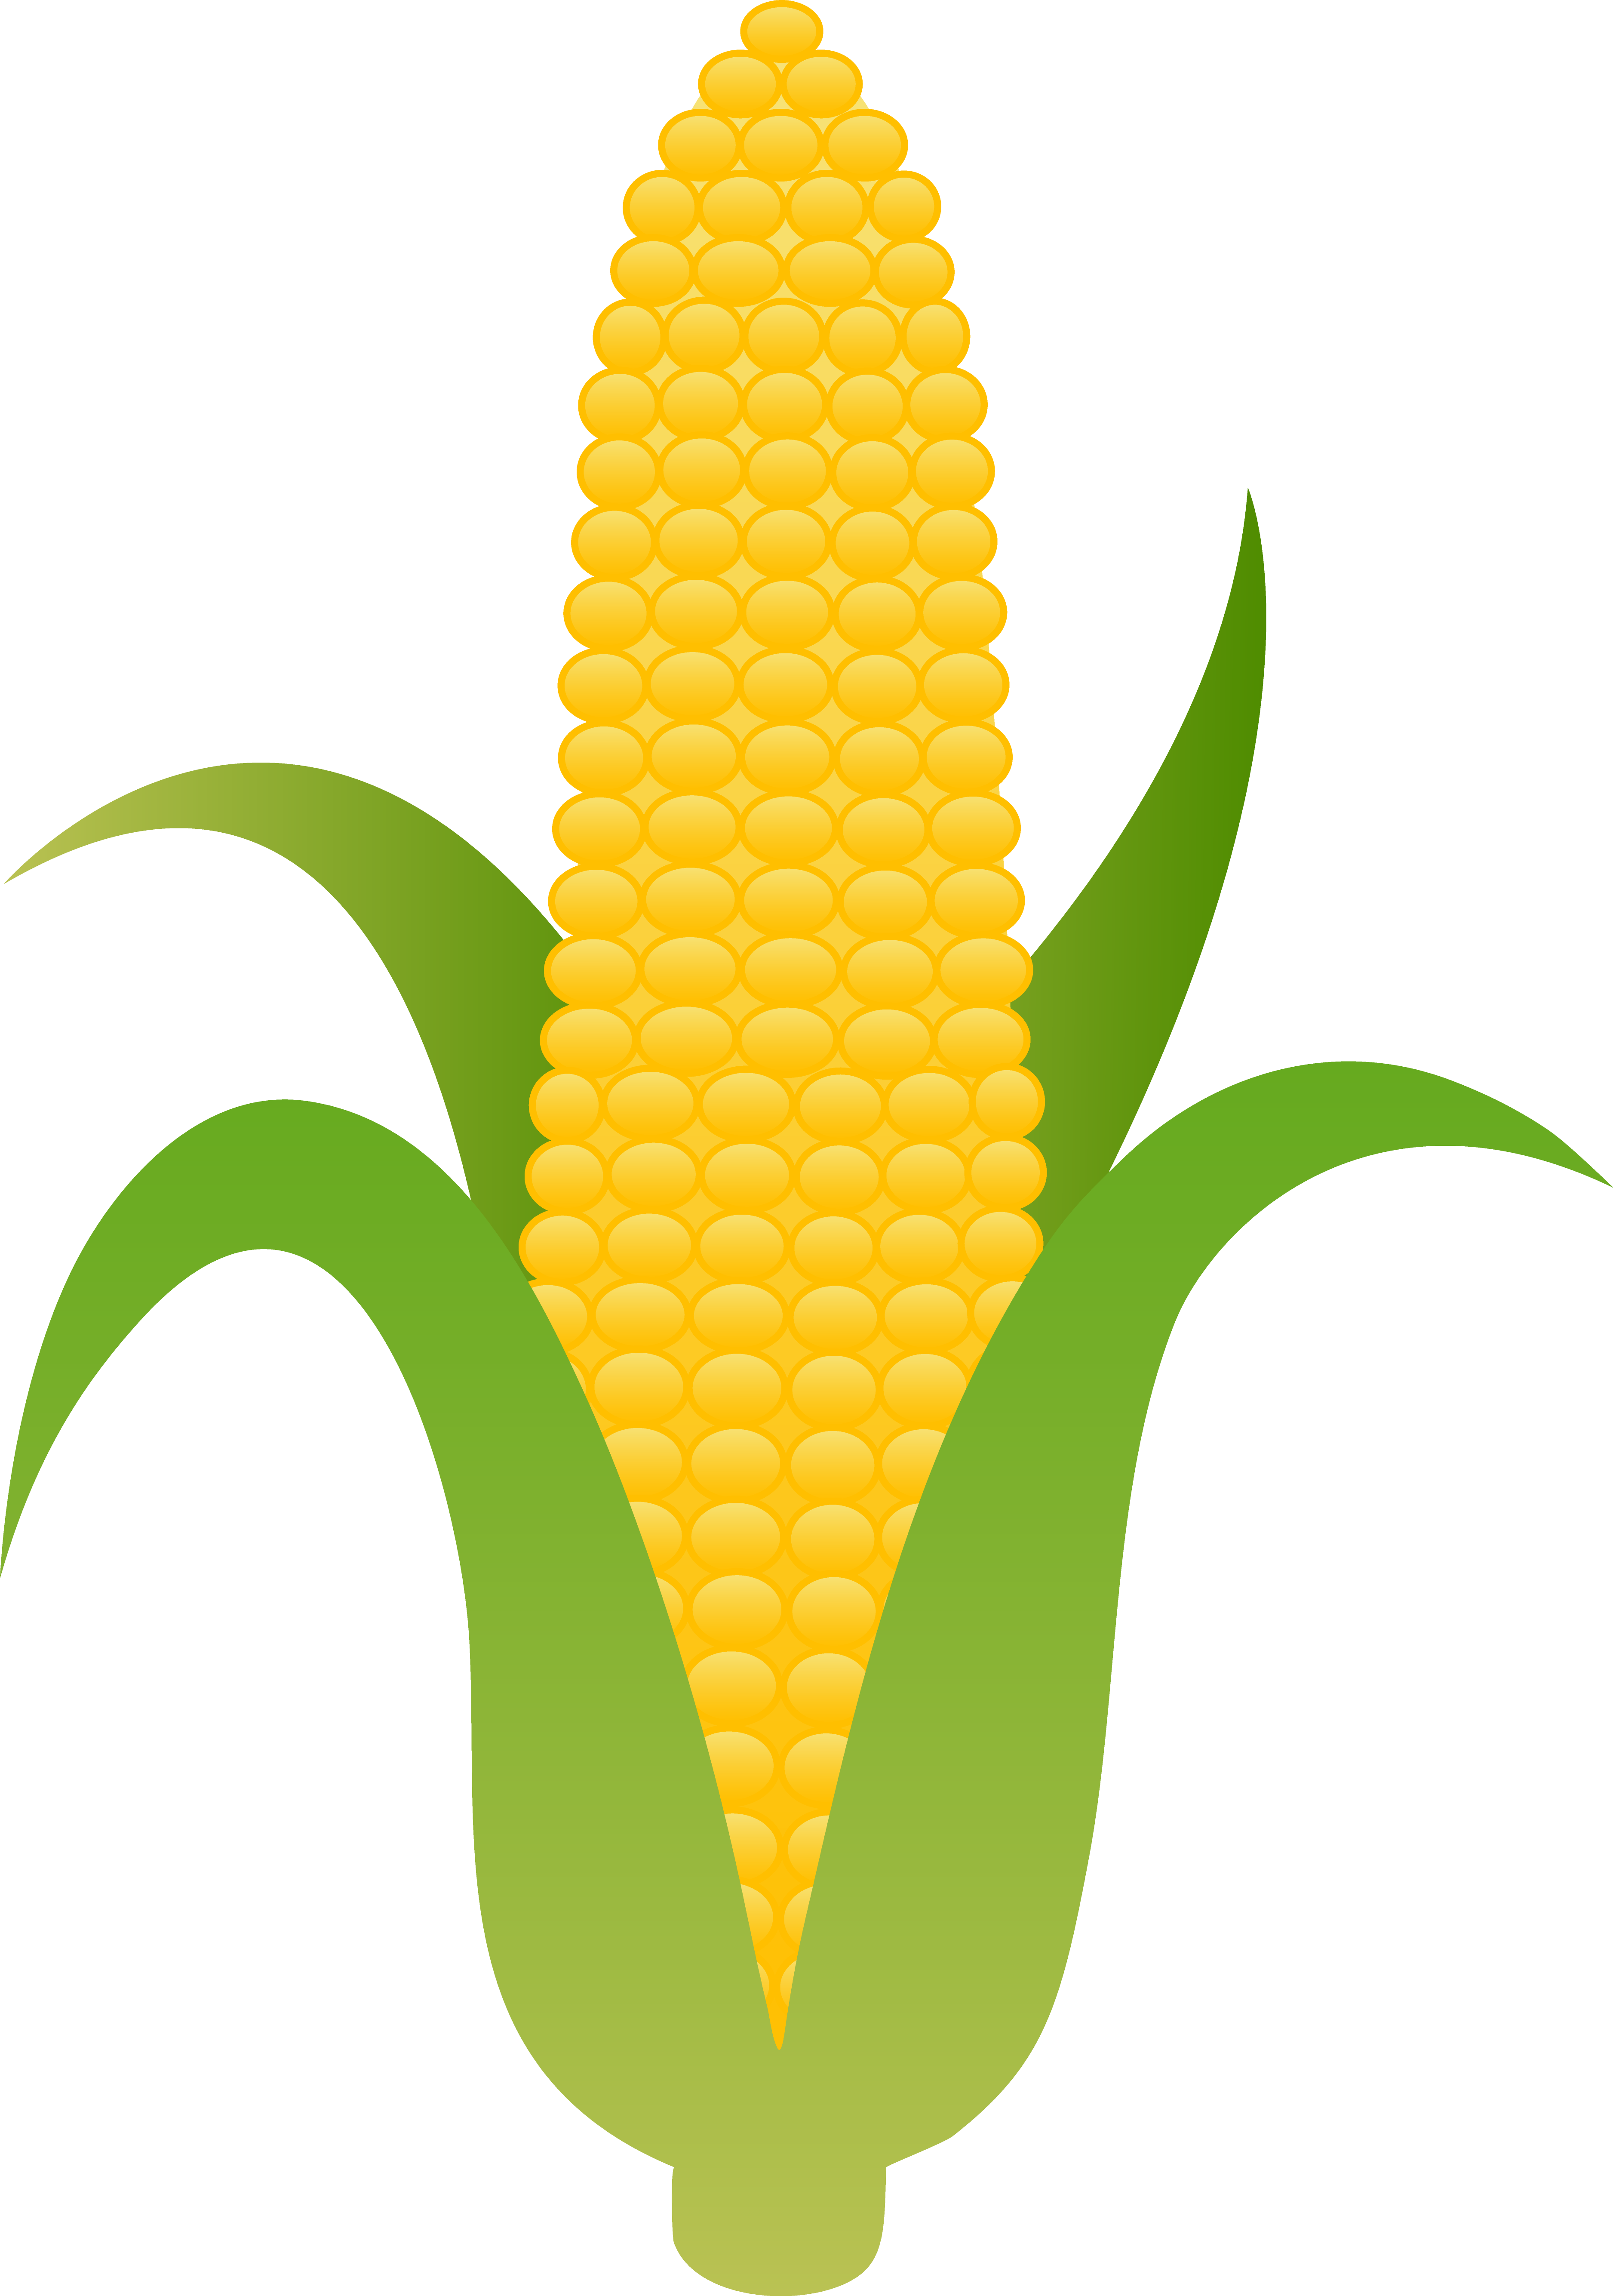 Pictures Of Corn On The Cob - Cliparts.co